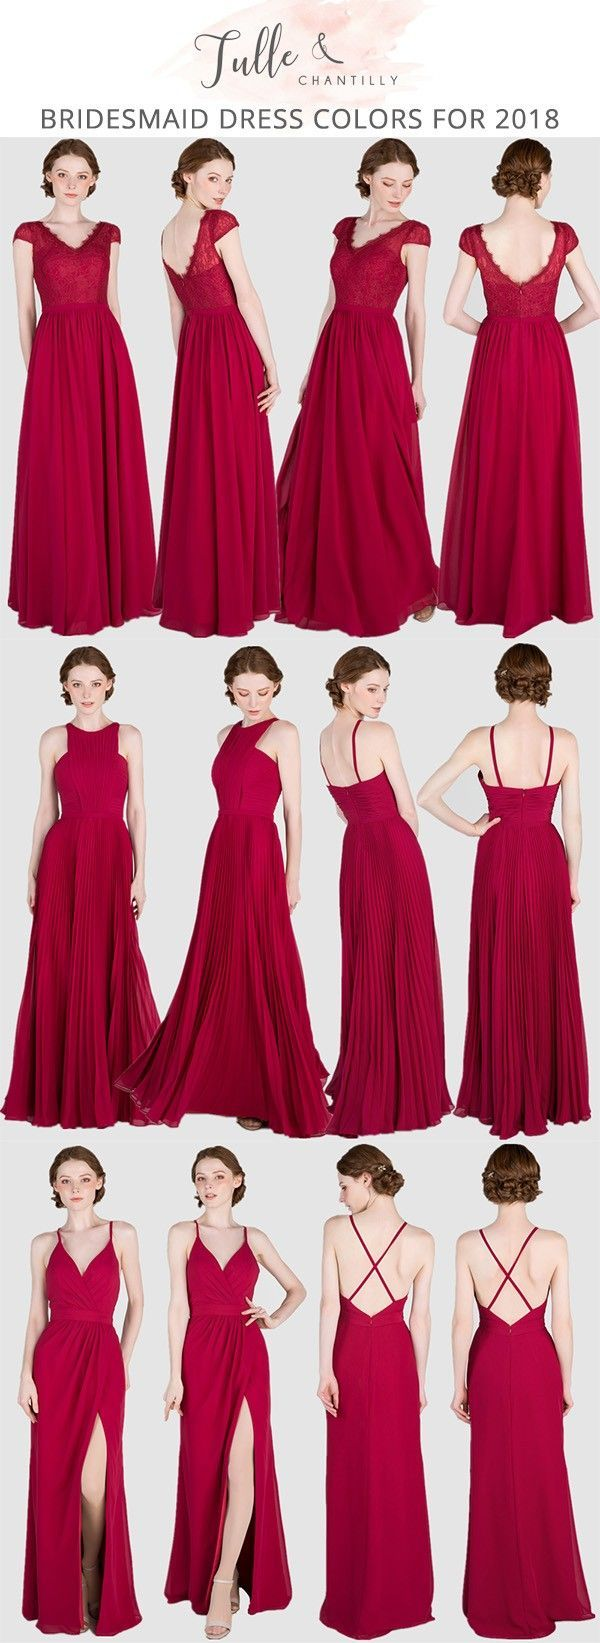 13++ Red bridesmaid dresses long ideas information